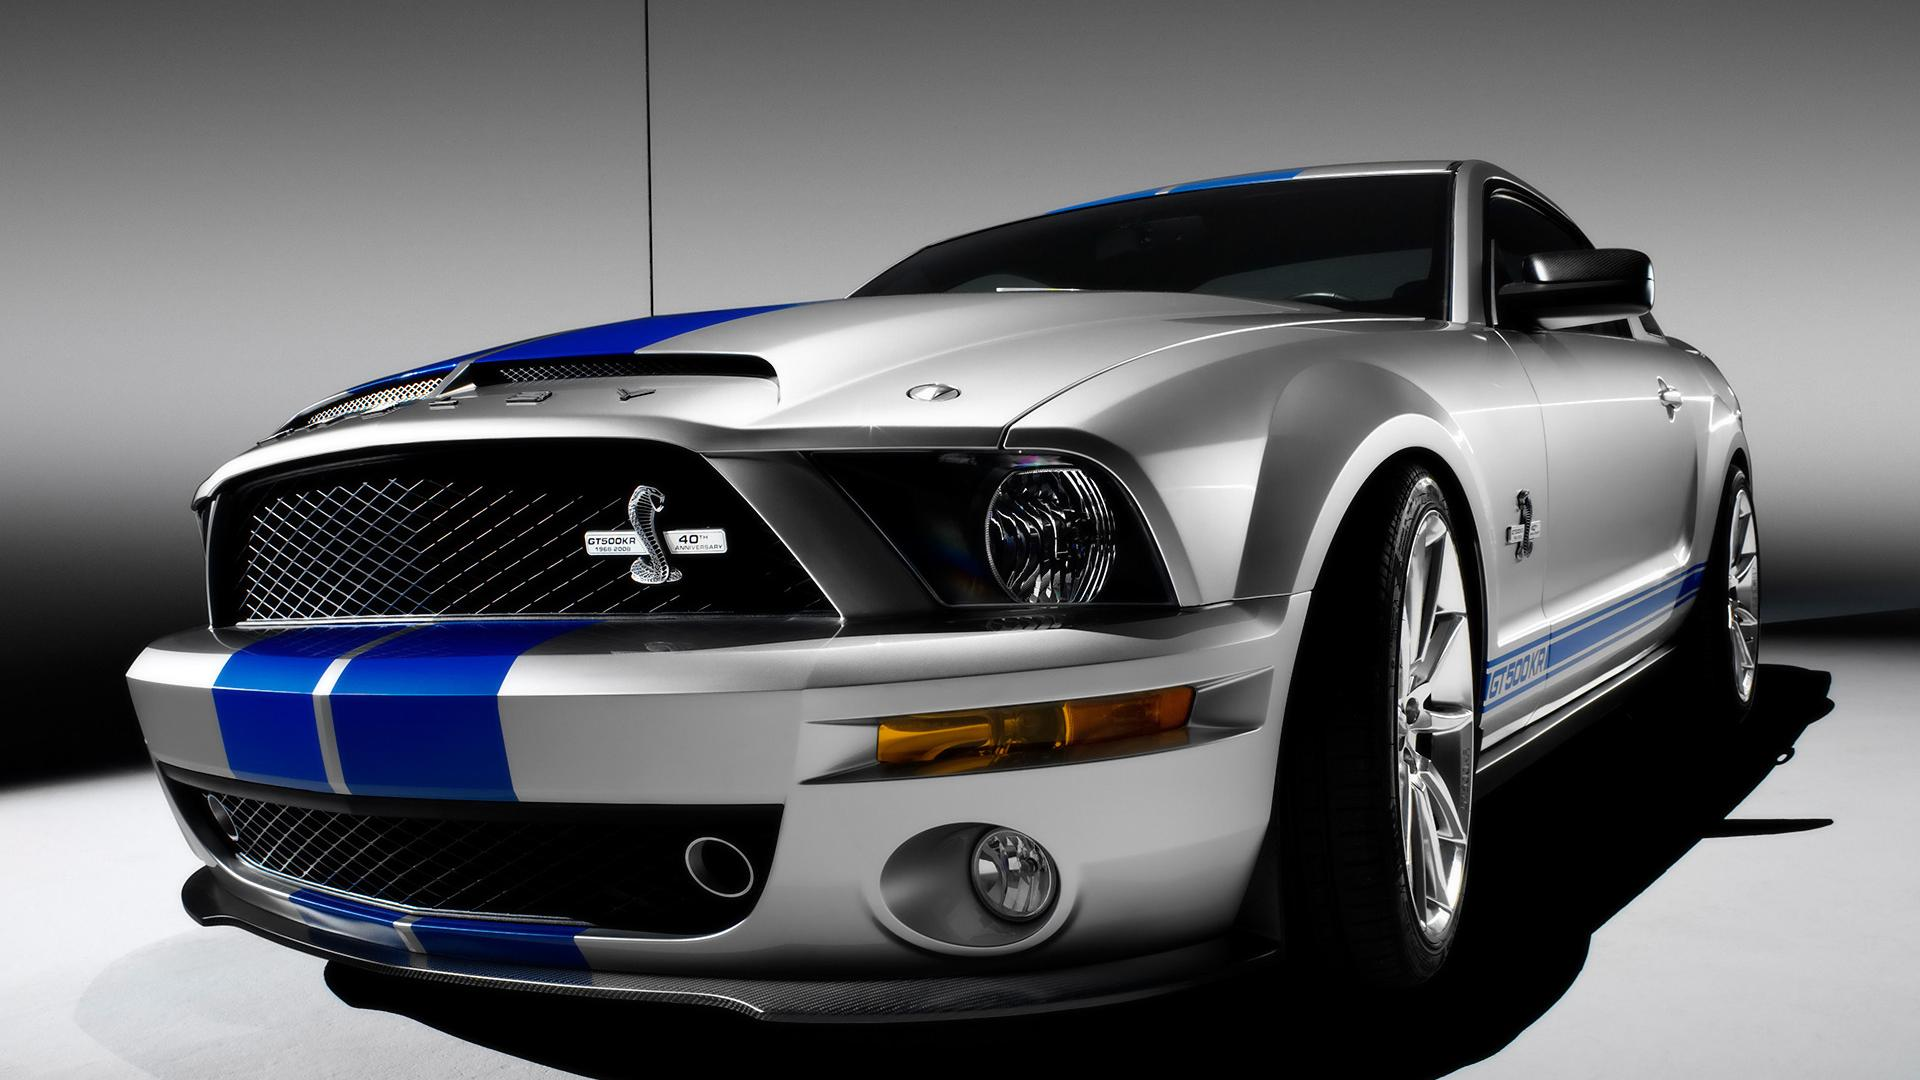 Ford Mustang Gt Wallpapers High Quality Download Free